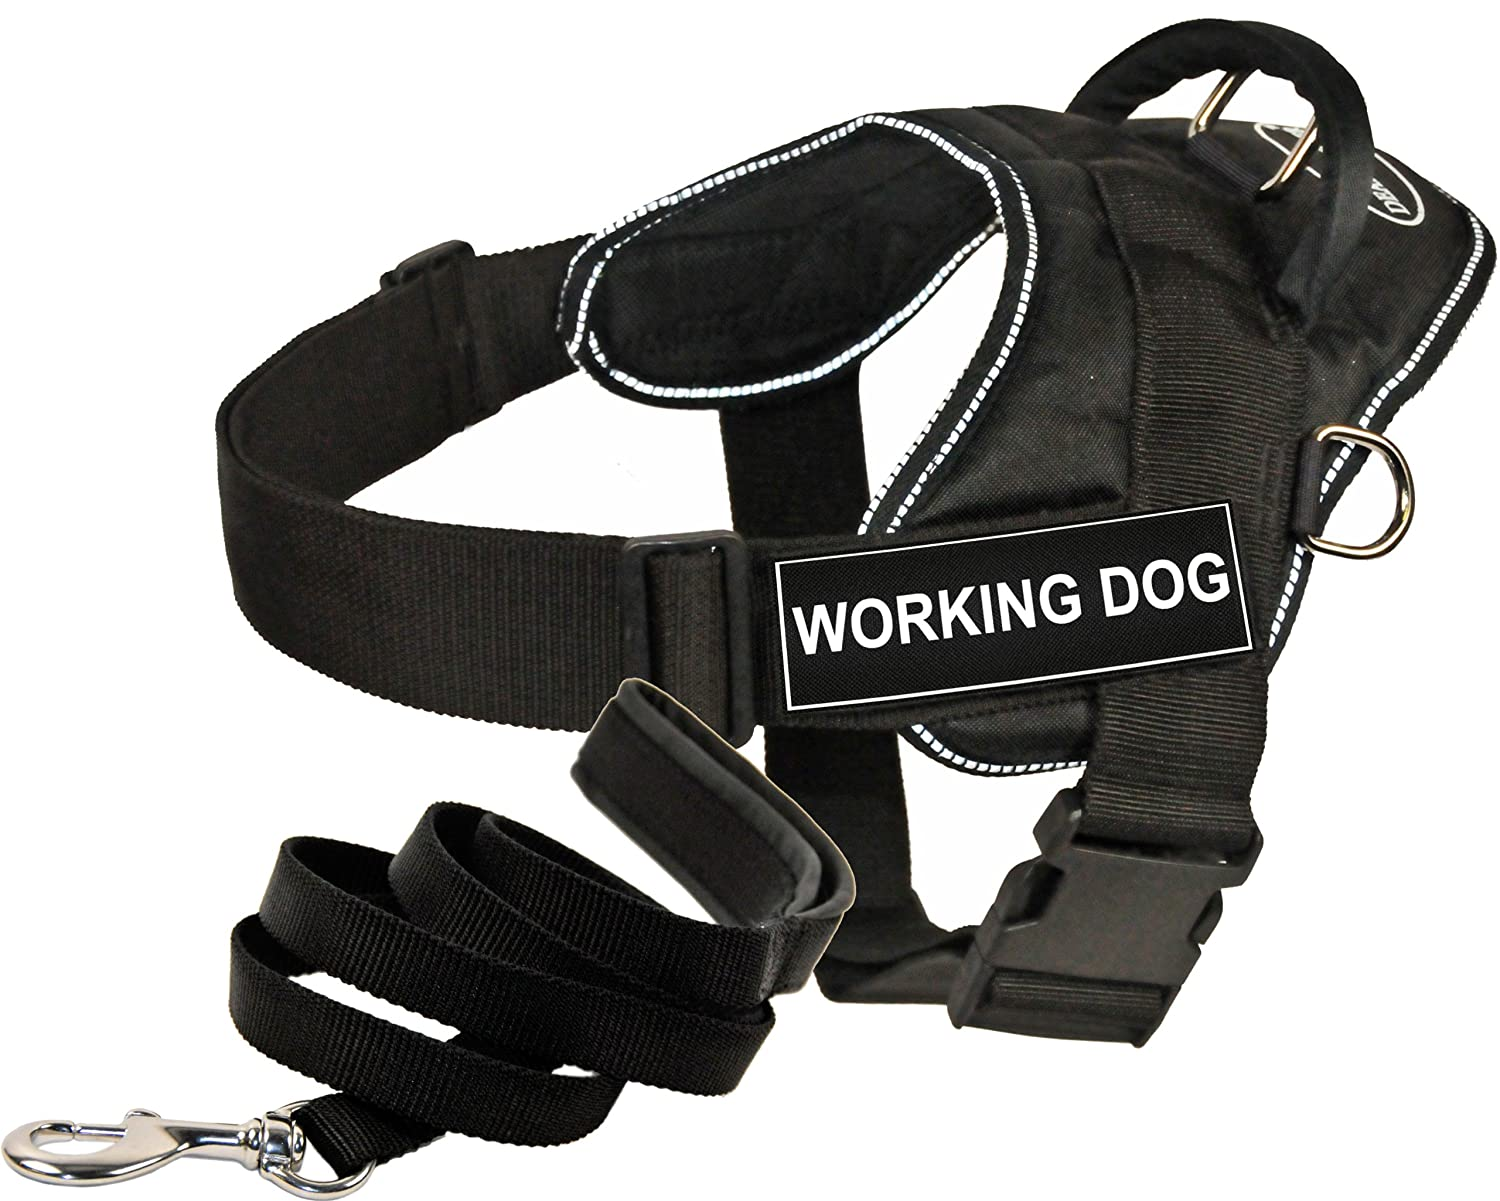 Dean and Tyler Bundle One DT Fun Works  Harness, Working Dog, Reflective, Small (22  27 ) + One Padded Puppy  Leash, 6 FT Stainless Snap Black